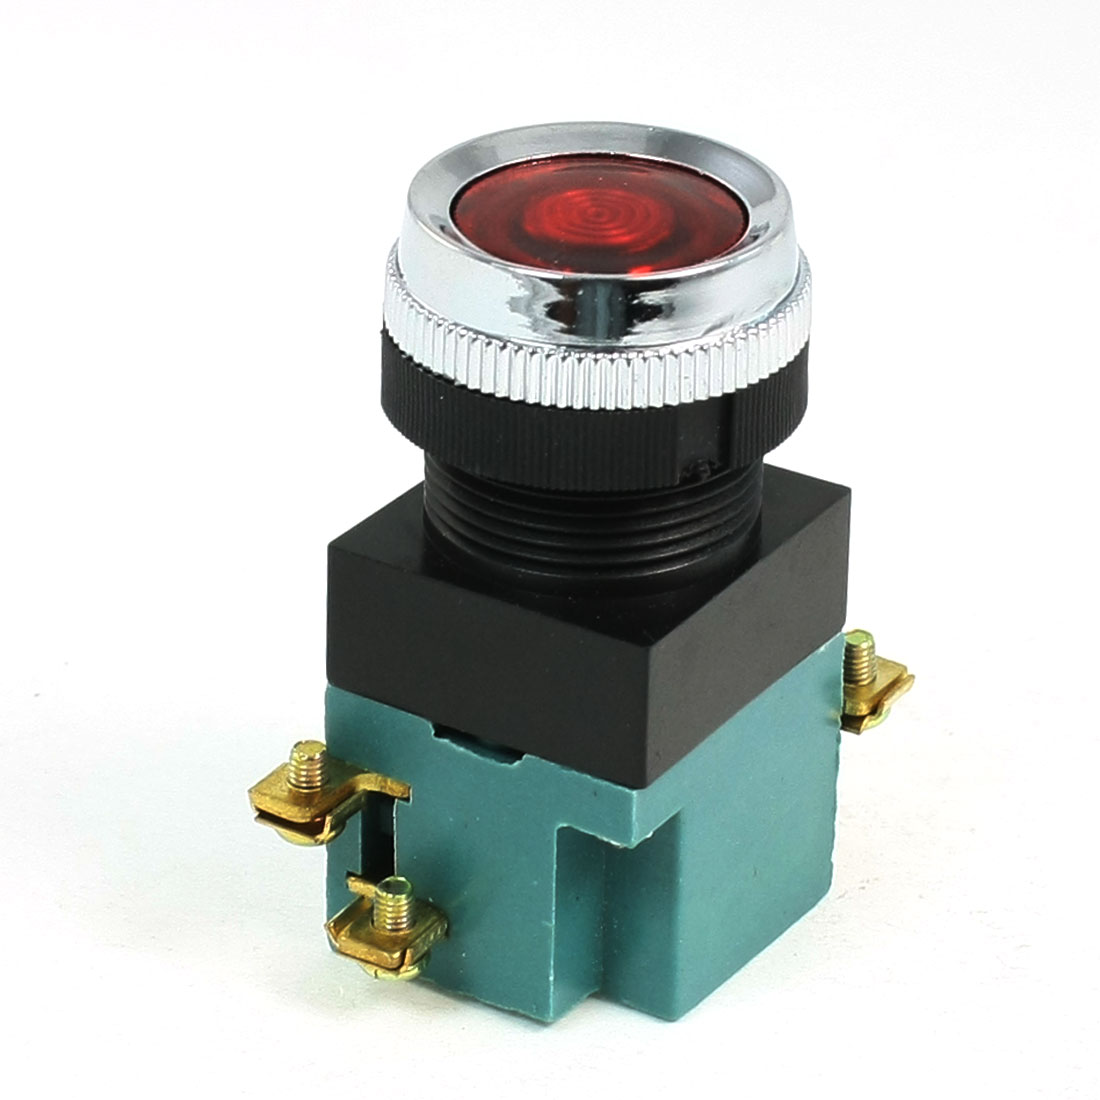 AC 380V 5A SPDT Momentary Contact Red Round Push Button Switch